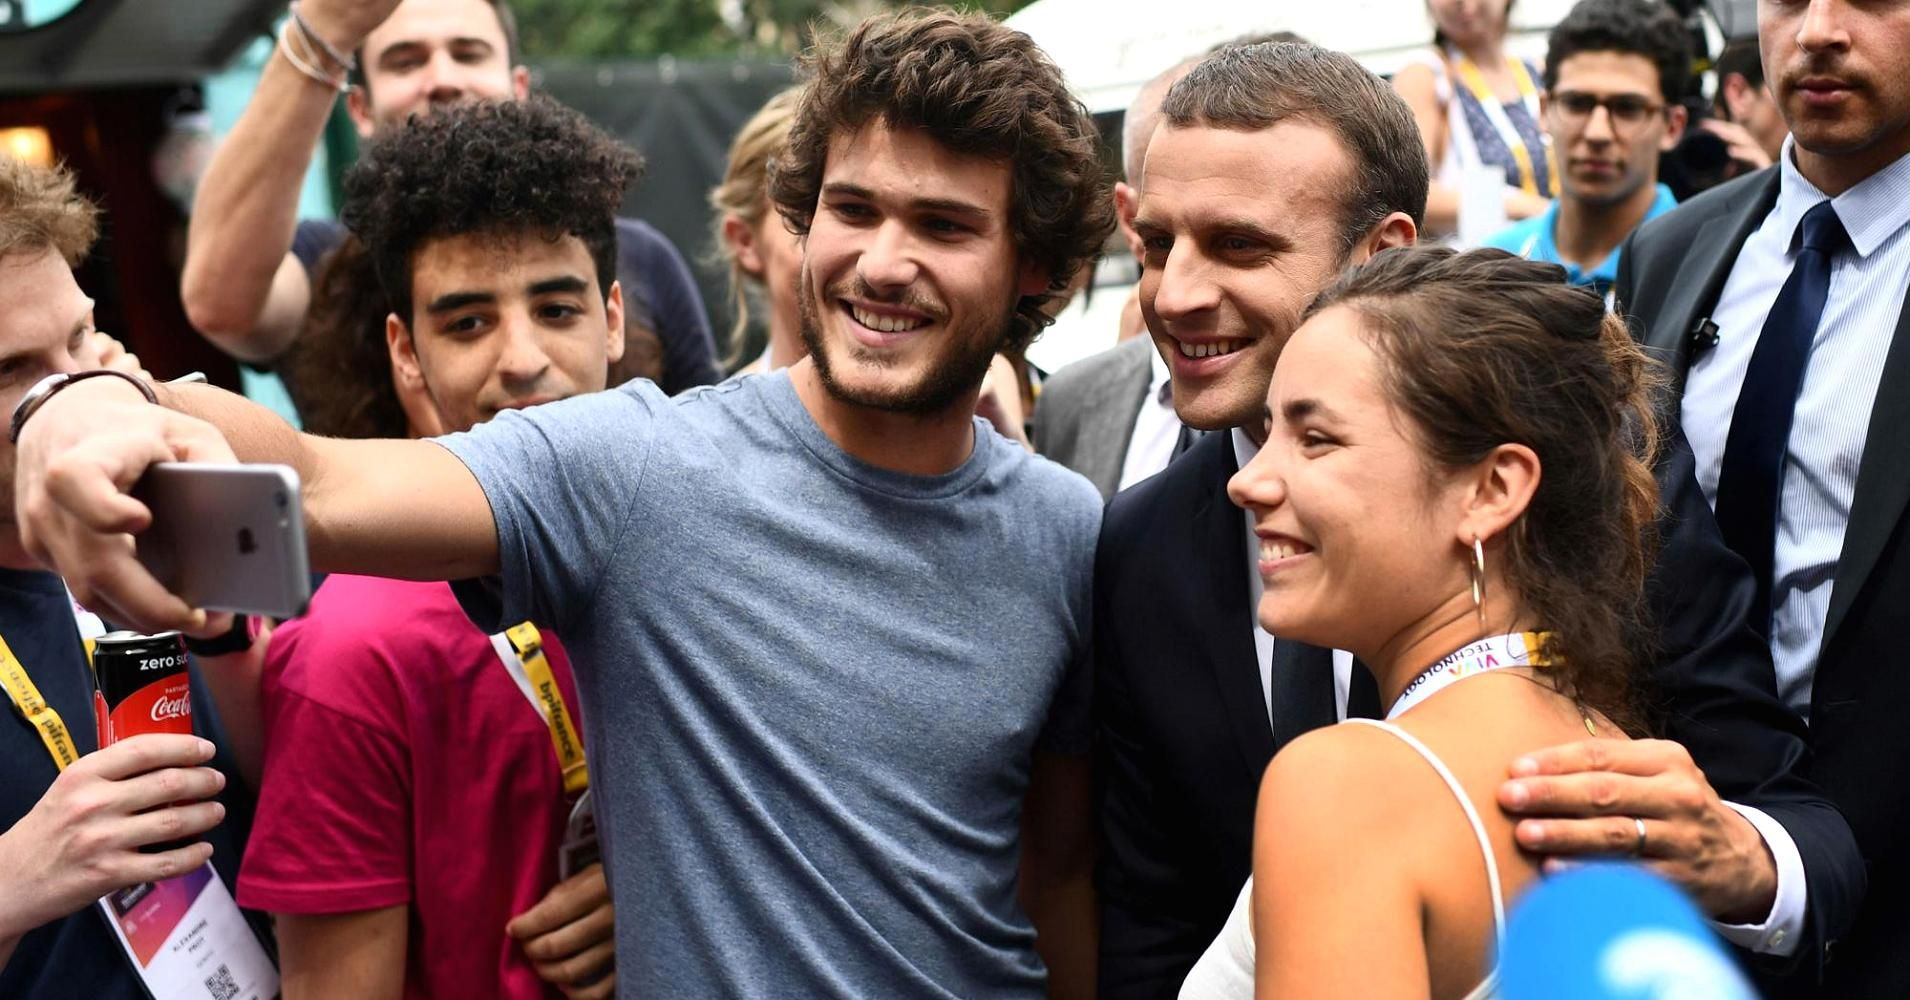 French President Macron launches tech visa to make France